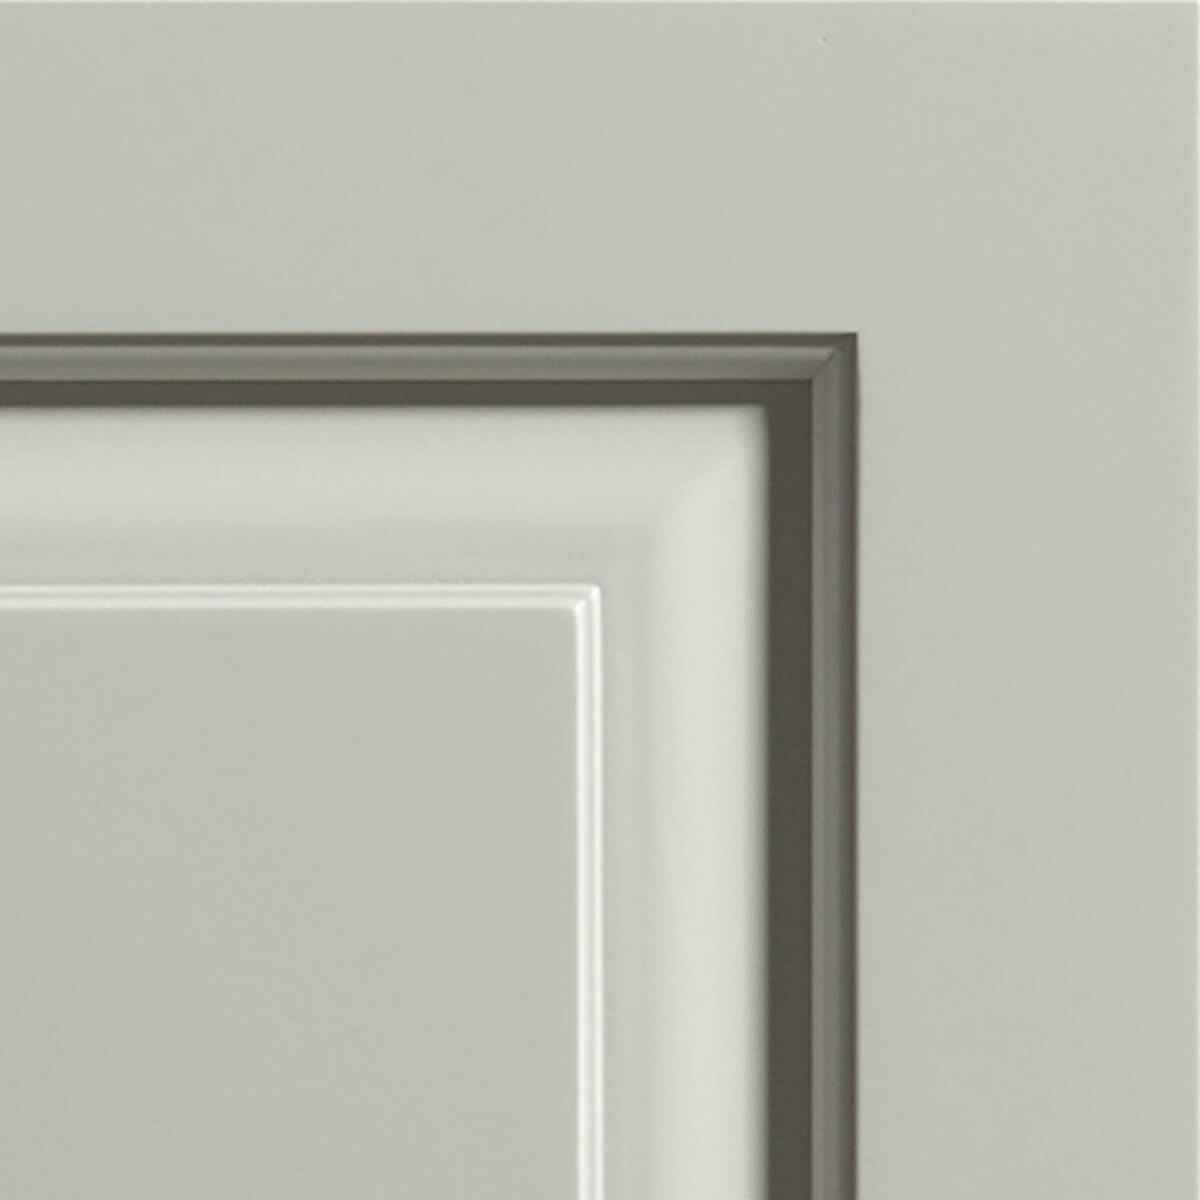 Moonstone paint by Dura Supreme in the Kendall door style.